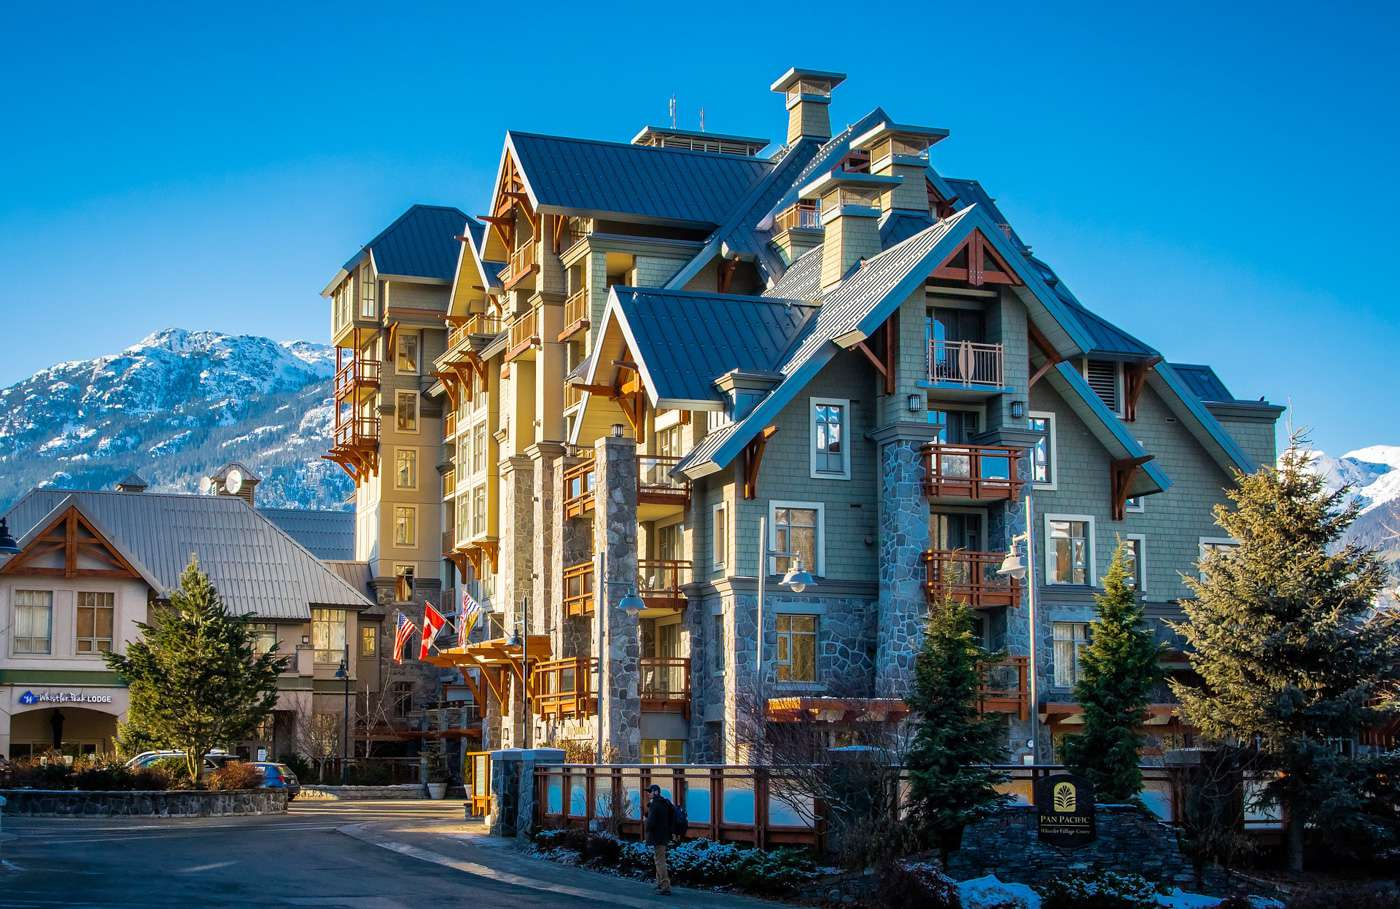 Whistler Travel Cost - Average Price of a Vacation to ...